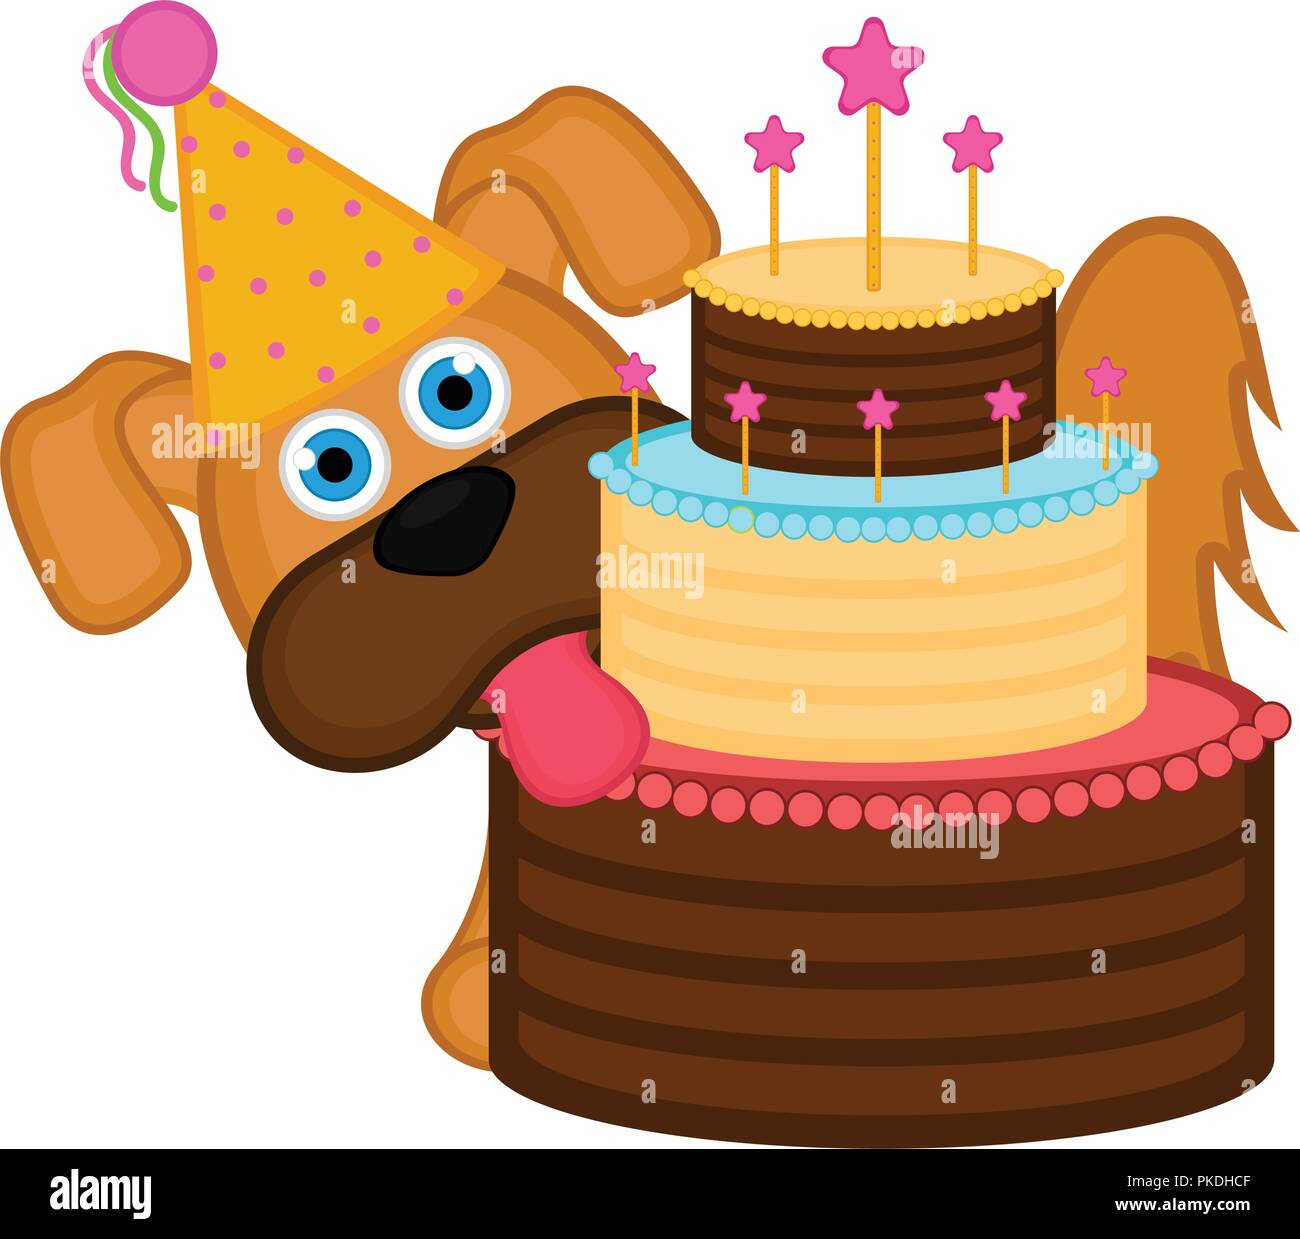 Cute Dog With A Party Hat And Cake Happy Birthday Vector Illustration Design